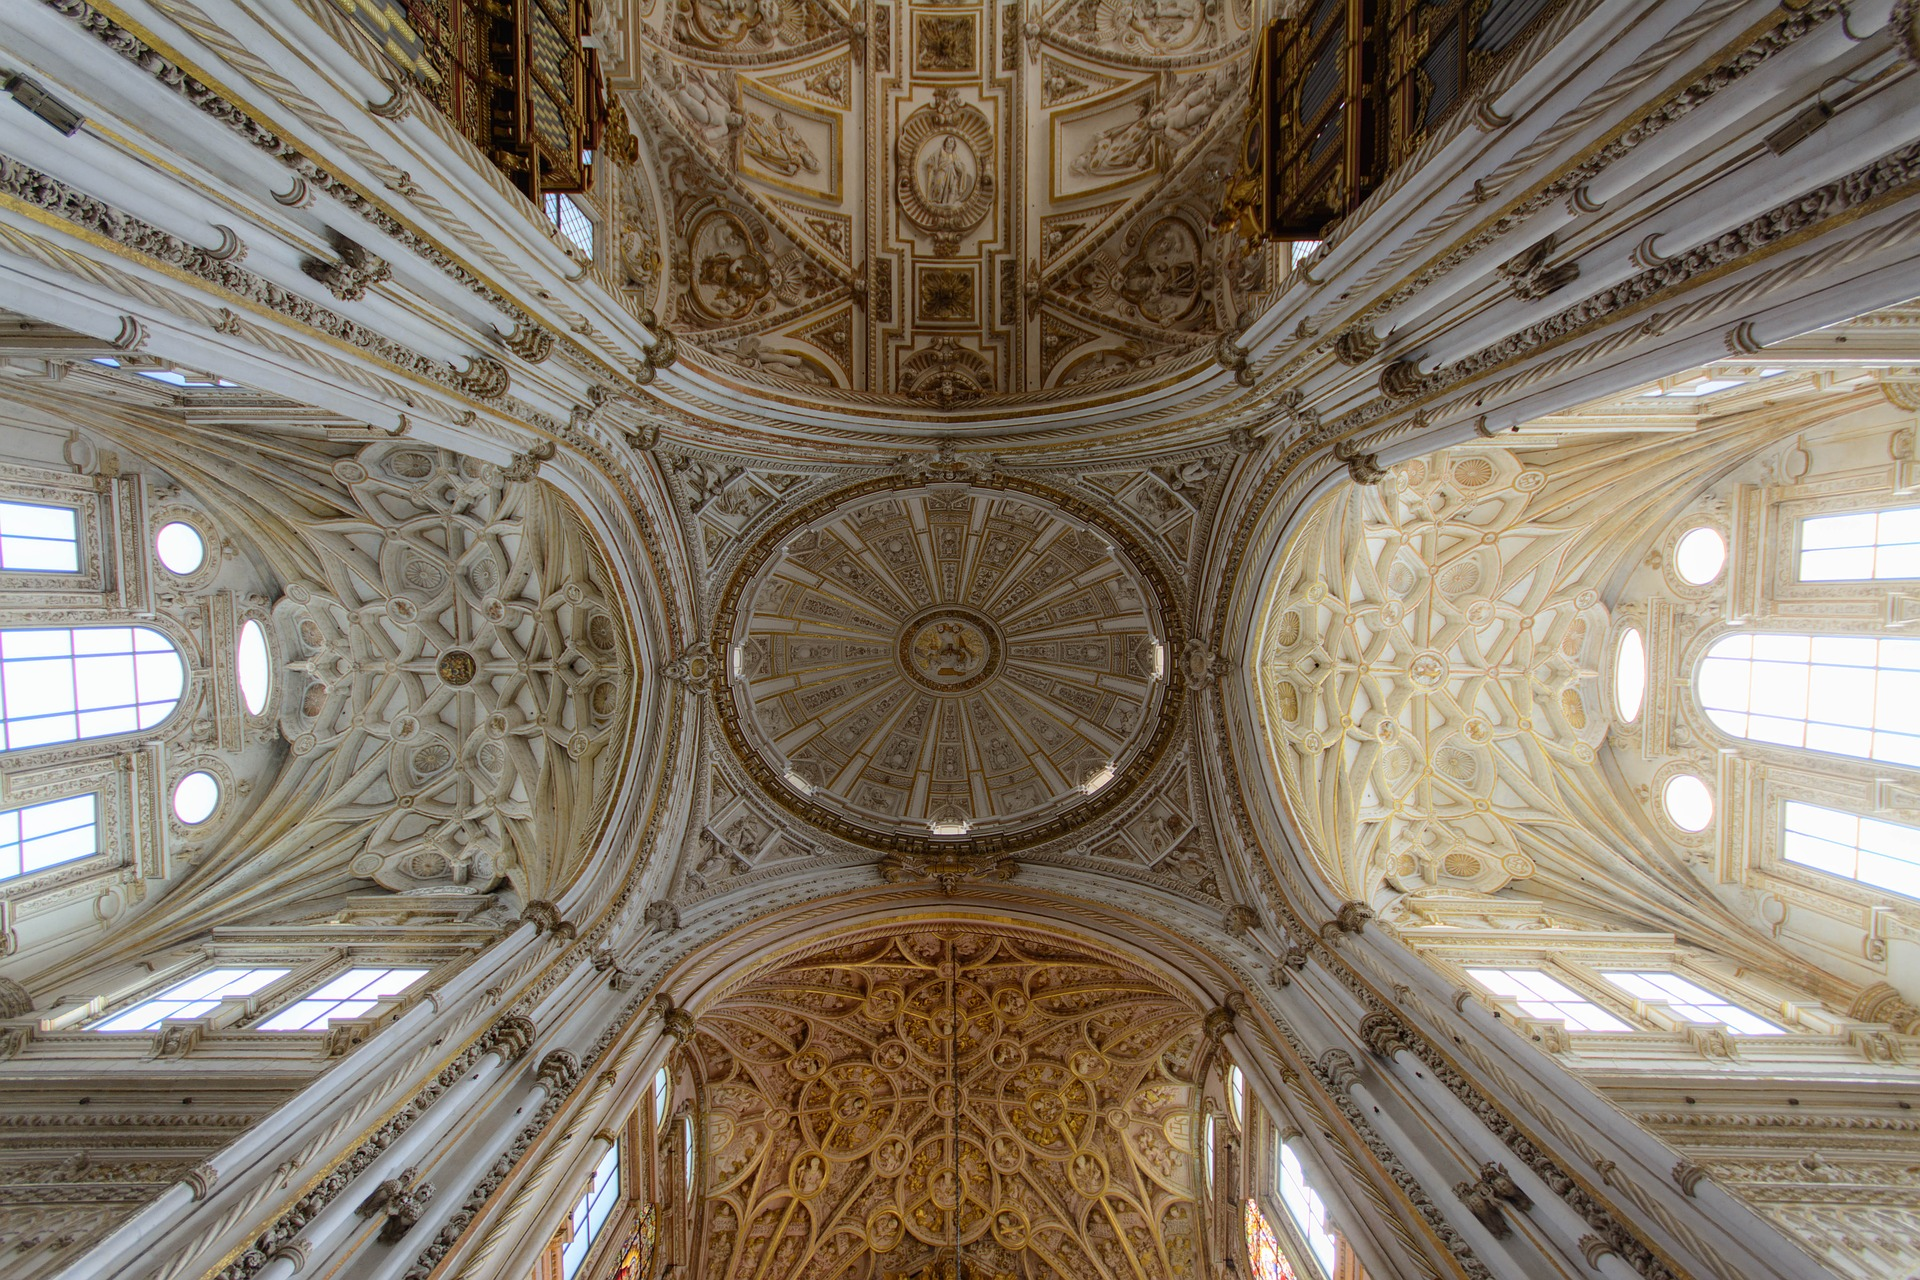 Vault of a cathedral